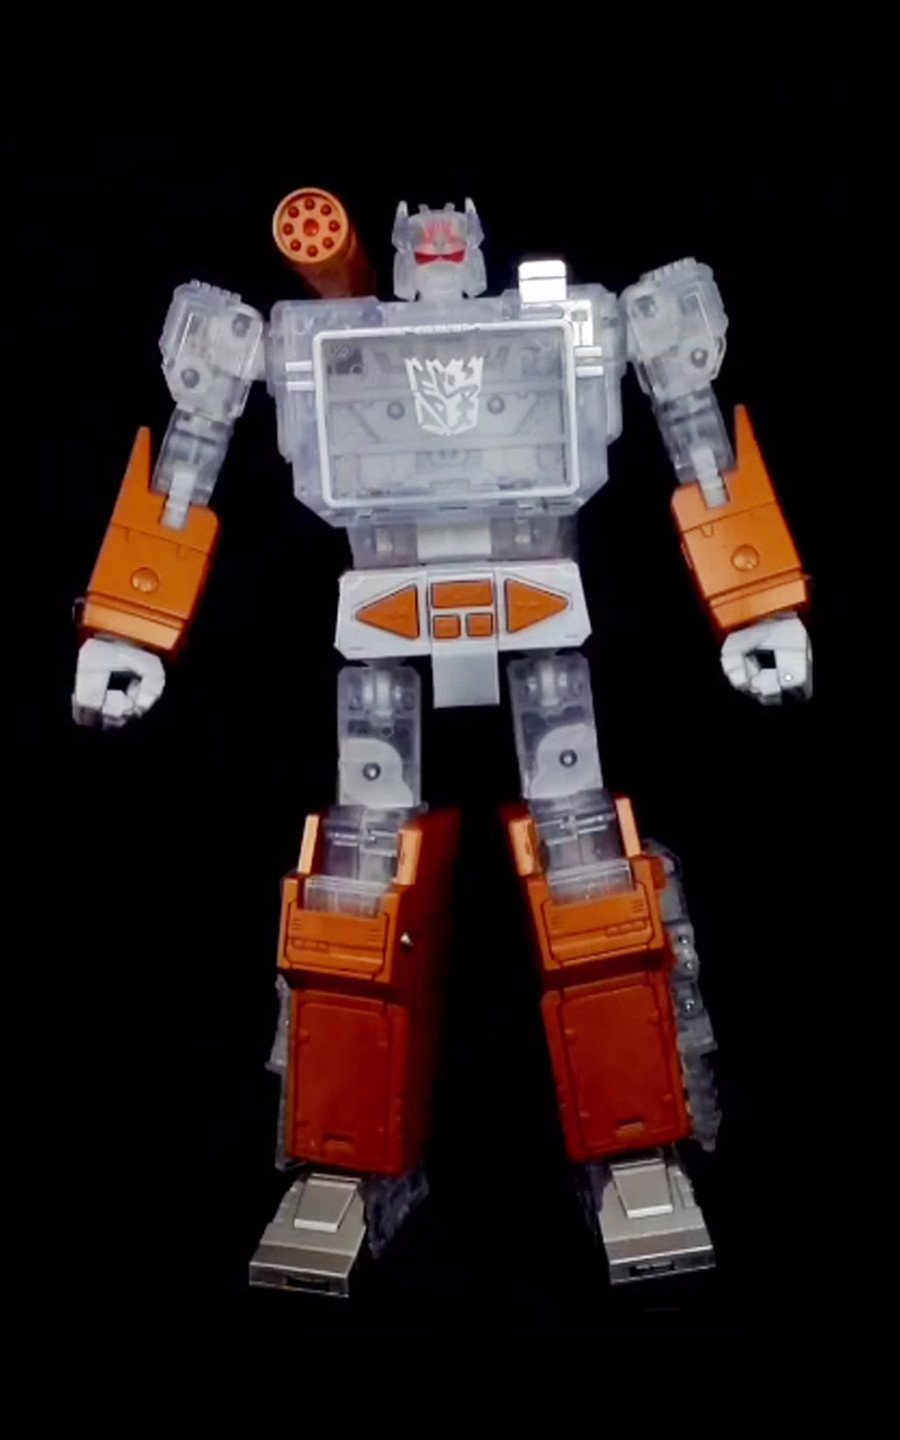 Transformers Year Of Goat Platinum Masterpiece MP-13 Soundwave with 5 Tapes